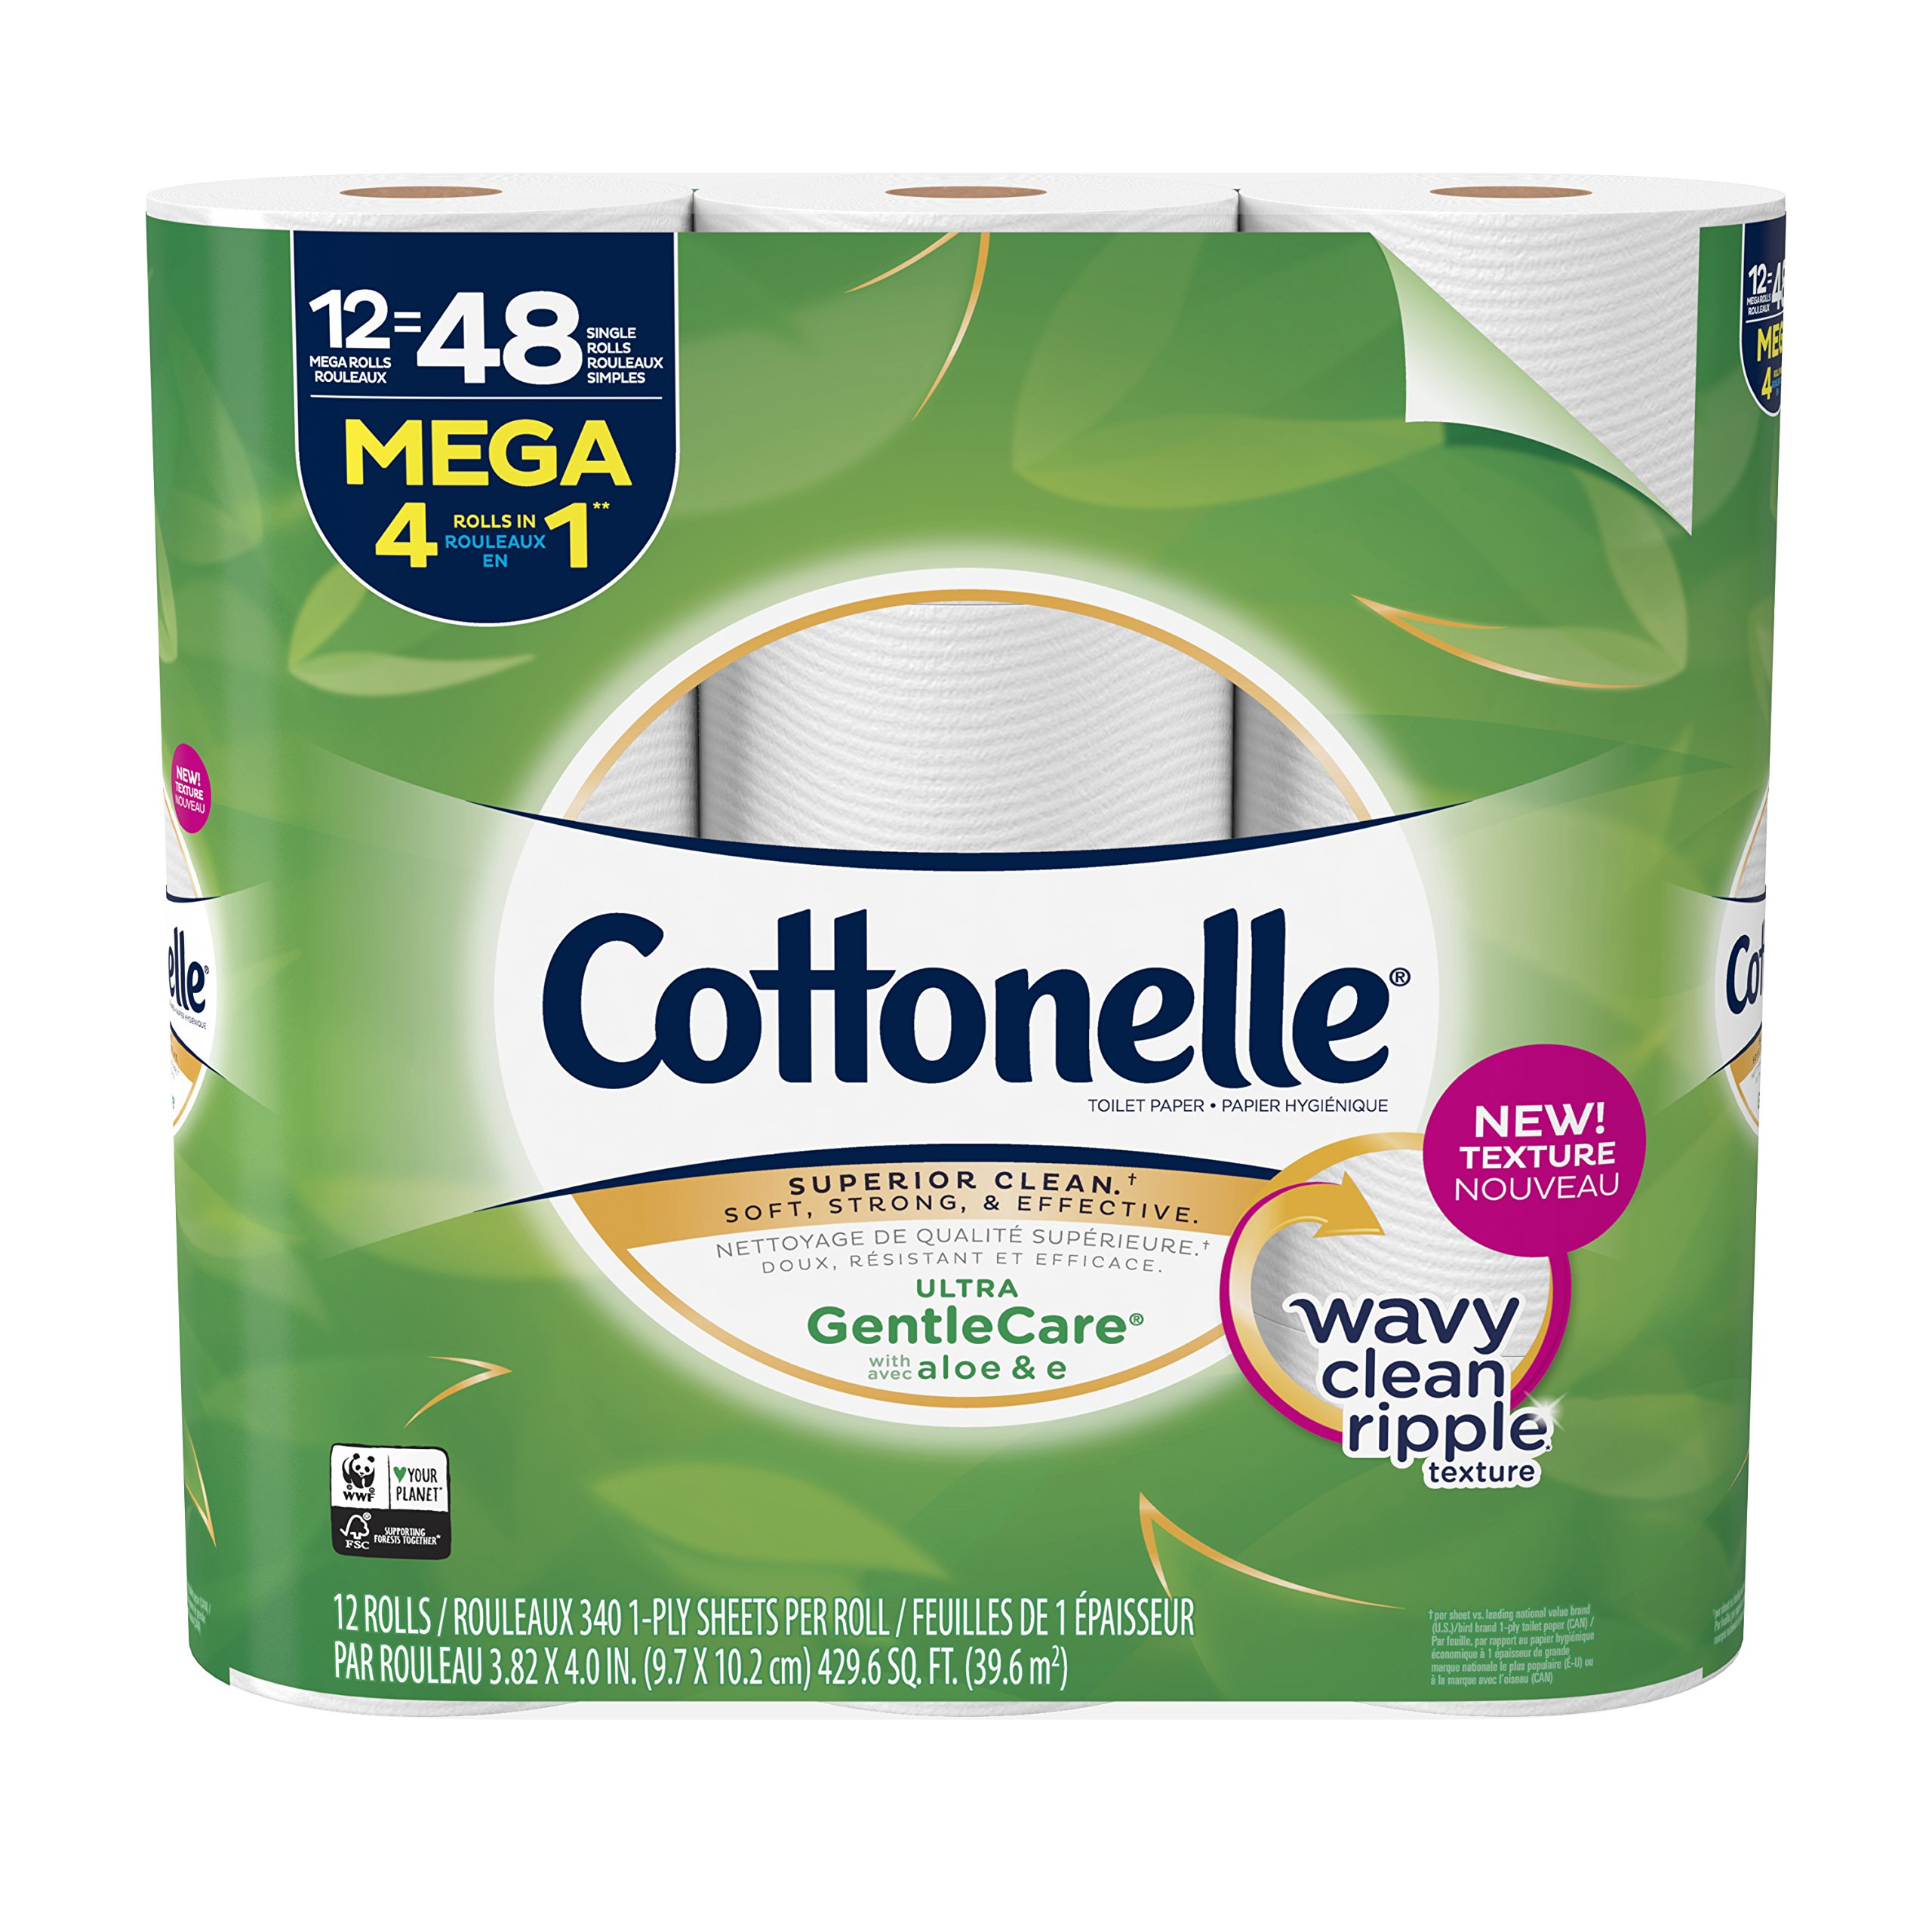 Cottonelle Ultra GentleCare Toilet Paper, 12 Mega Rolls, Sensitive Bath Tissue with Aloe & Vitamin E